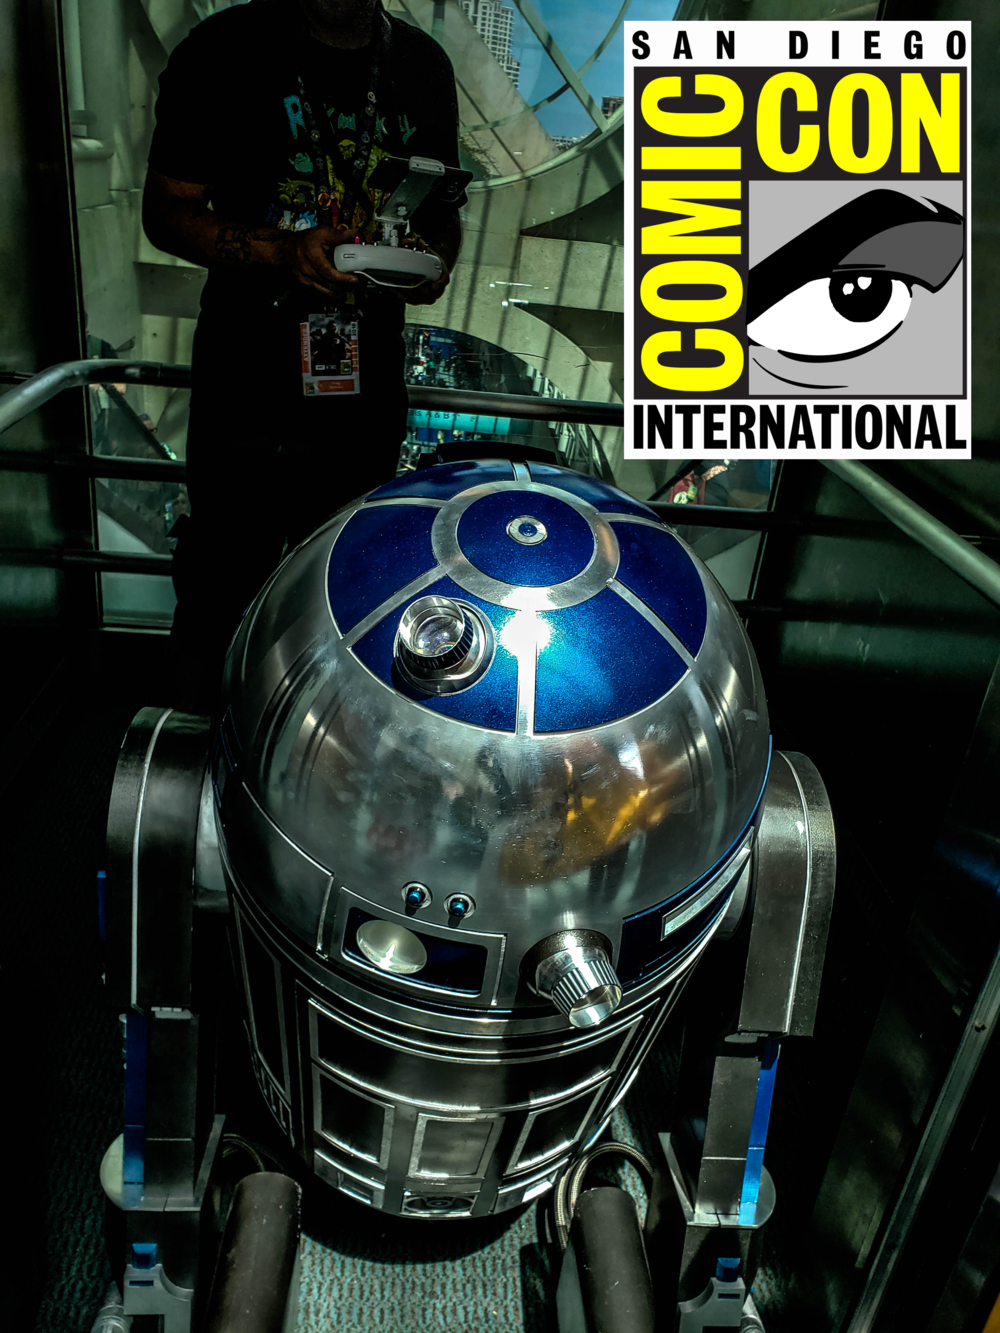 sdcc 15.png